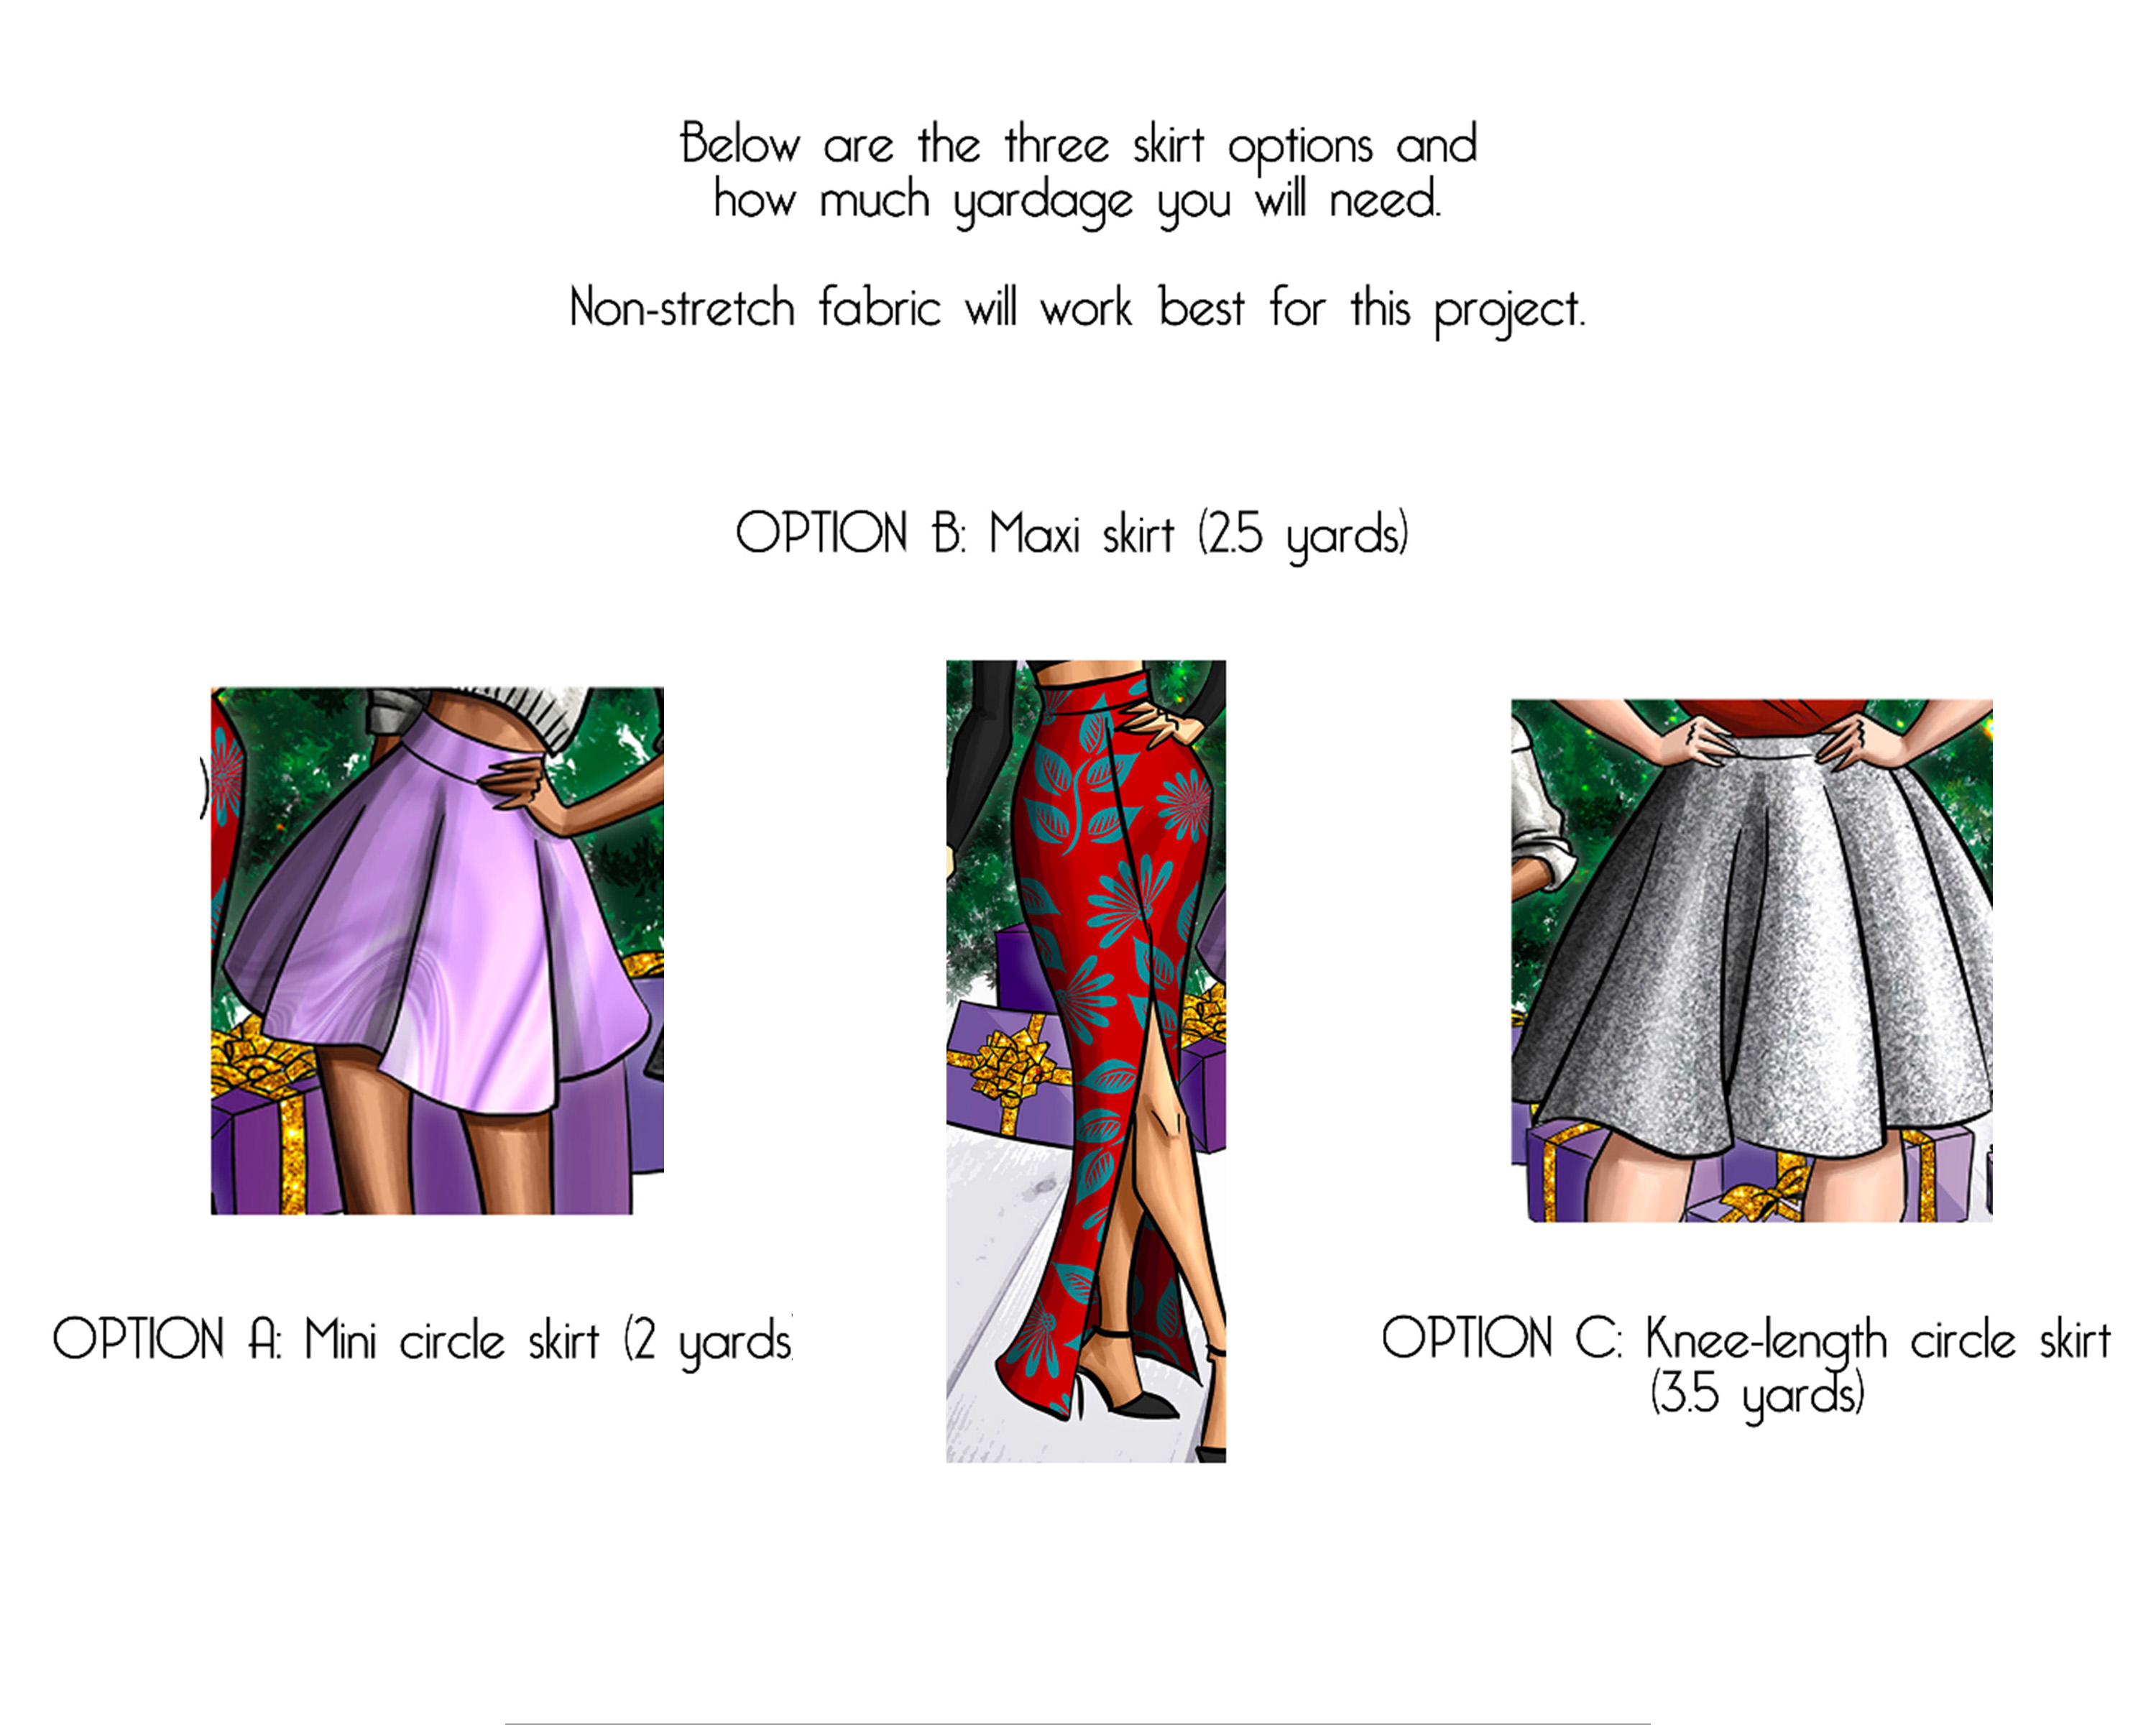 skirt styles to choose from for sewing